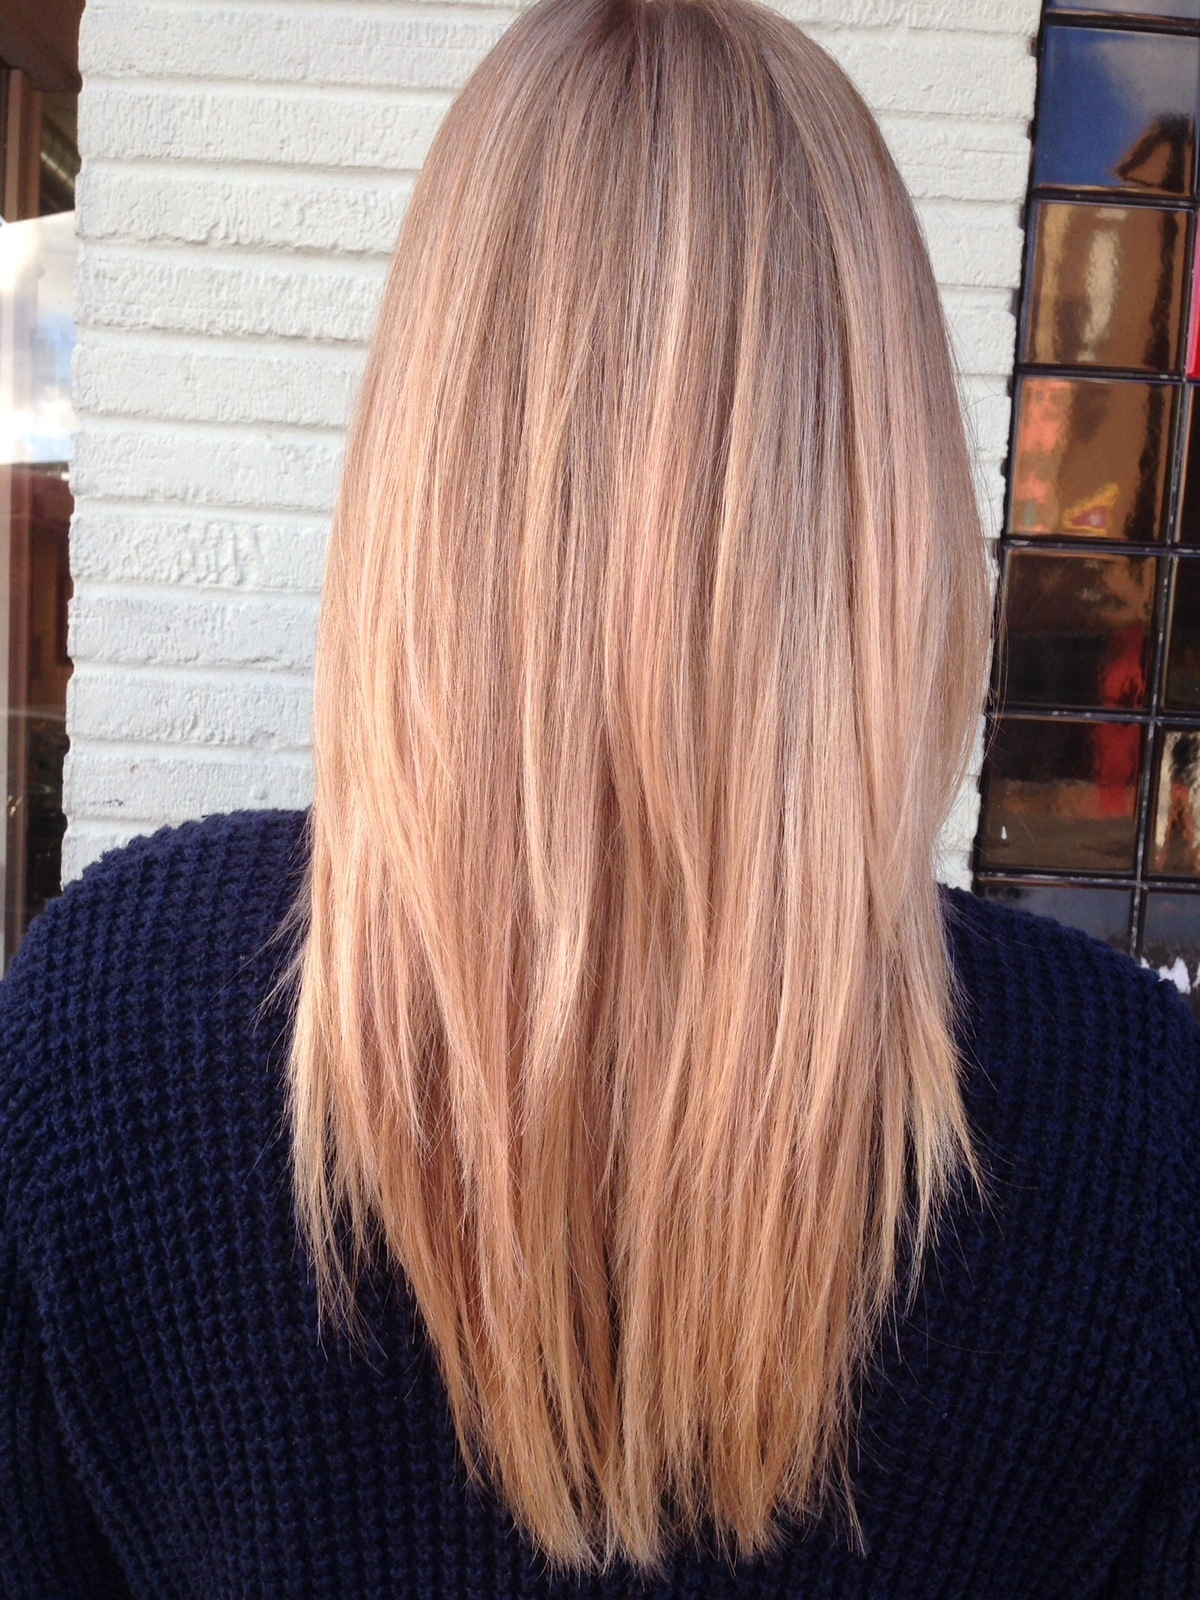 Andrea MillerLeFevre Hair Champagne Boone Rose Gold Blonde Balayage The